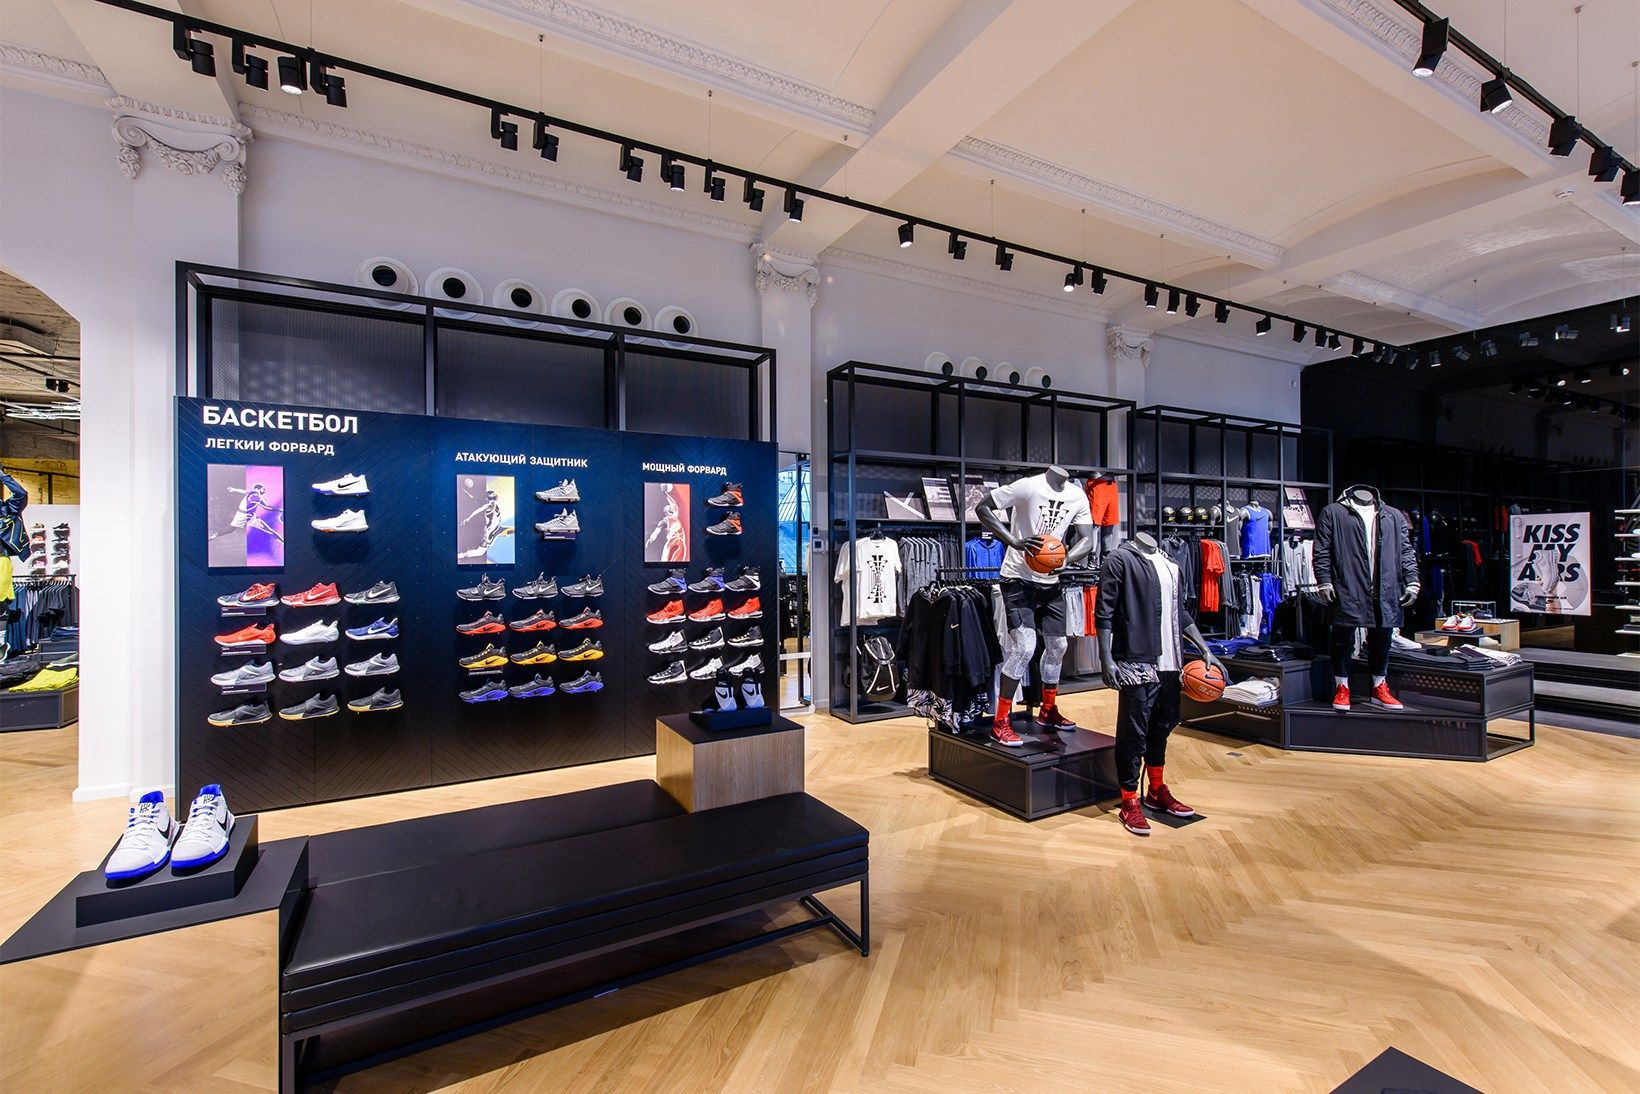 Lamer archivo Guinness  A Look Inside Nike's New Moscow Flagship | Retail store design, Store  design, Retail interior